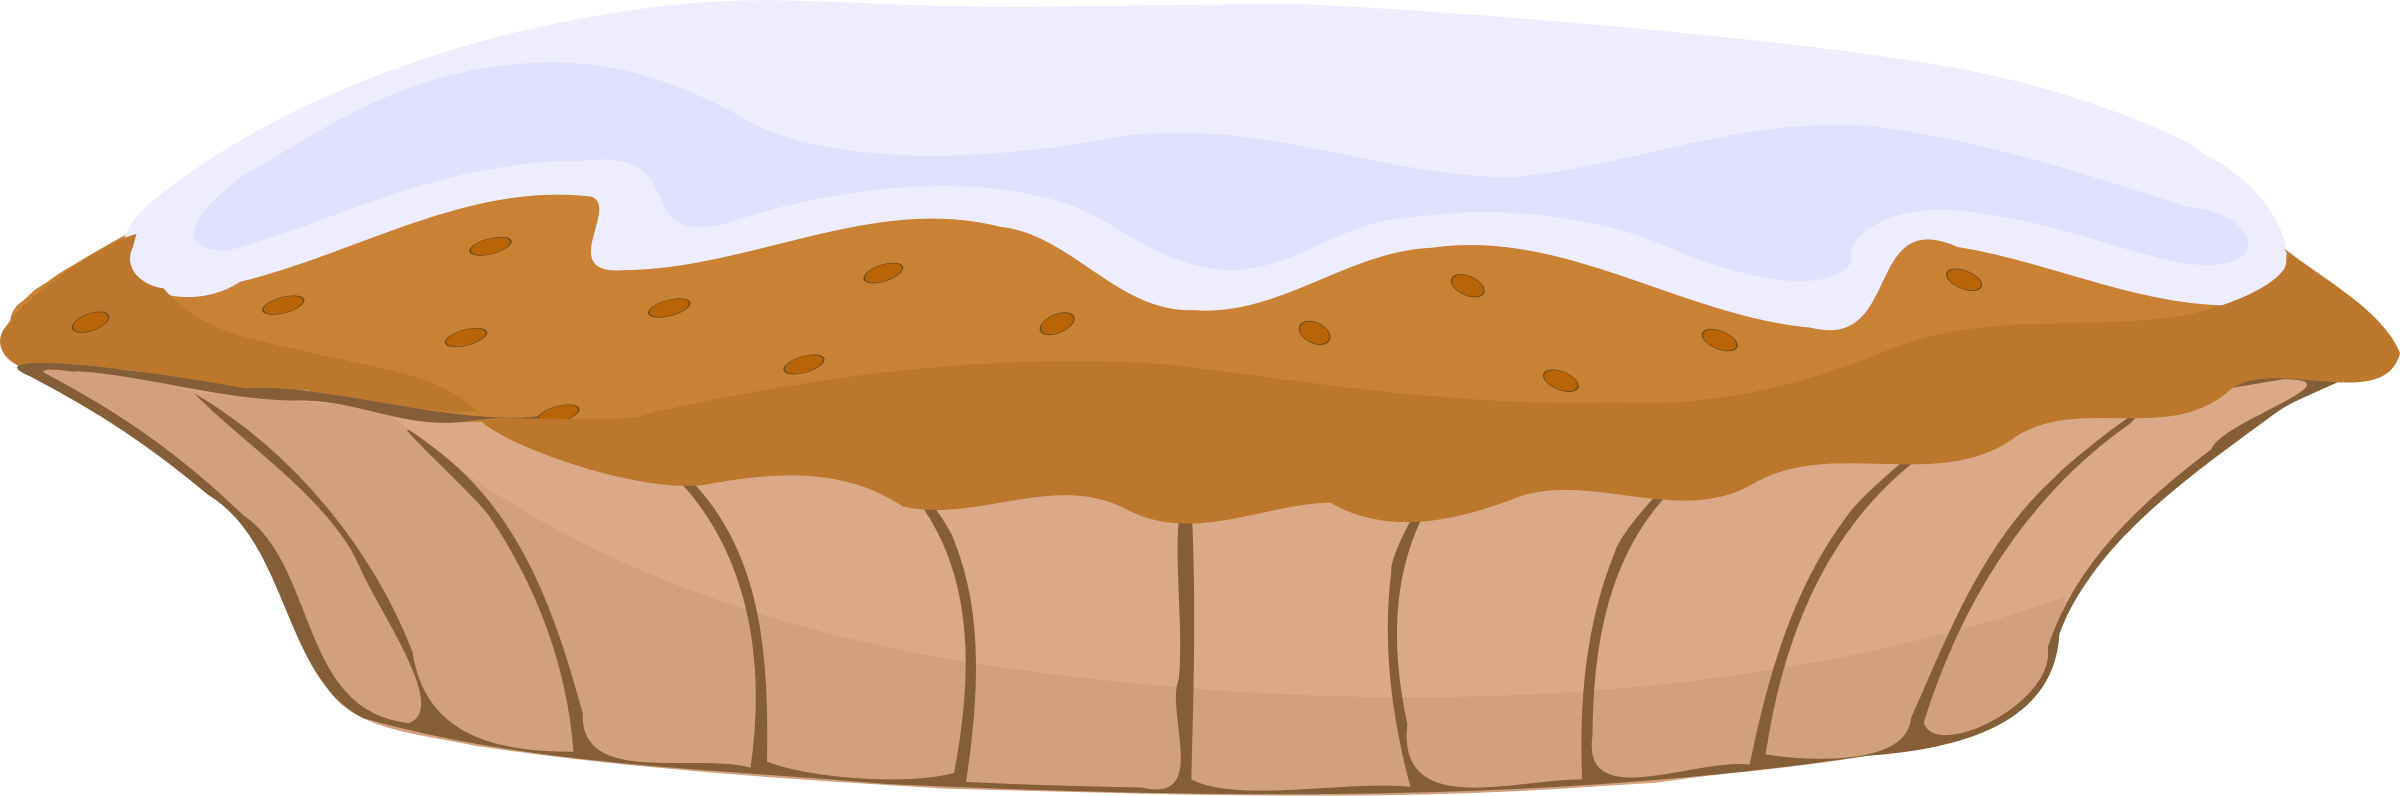 Clipart cake simple. Big image png